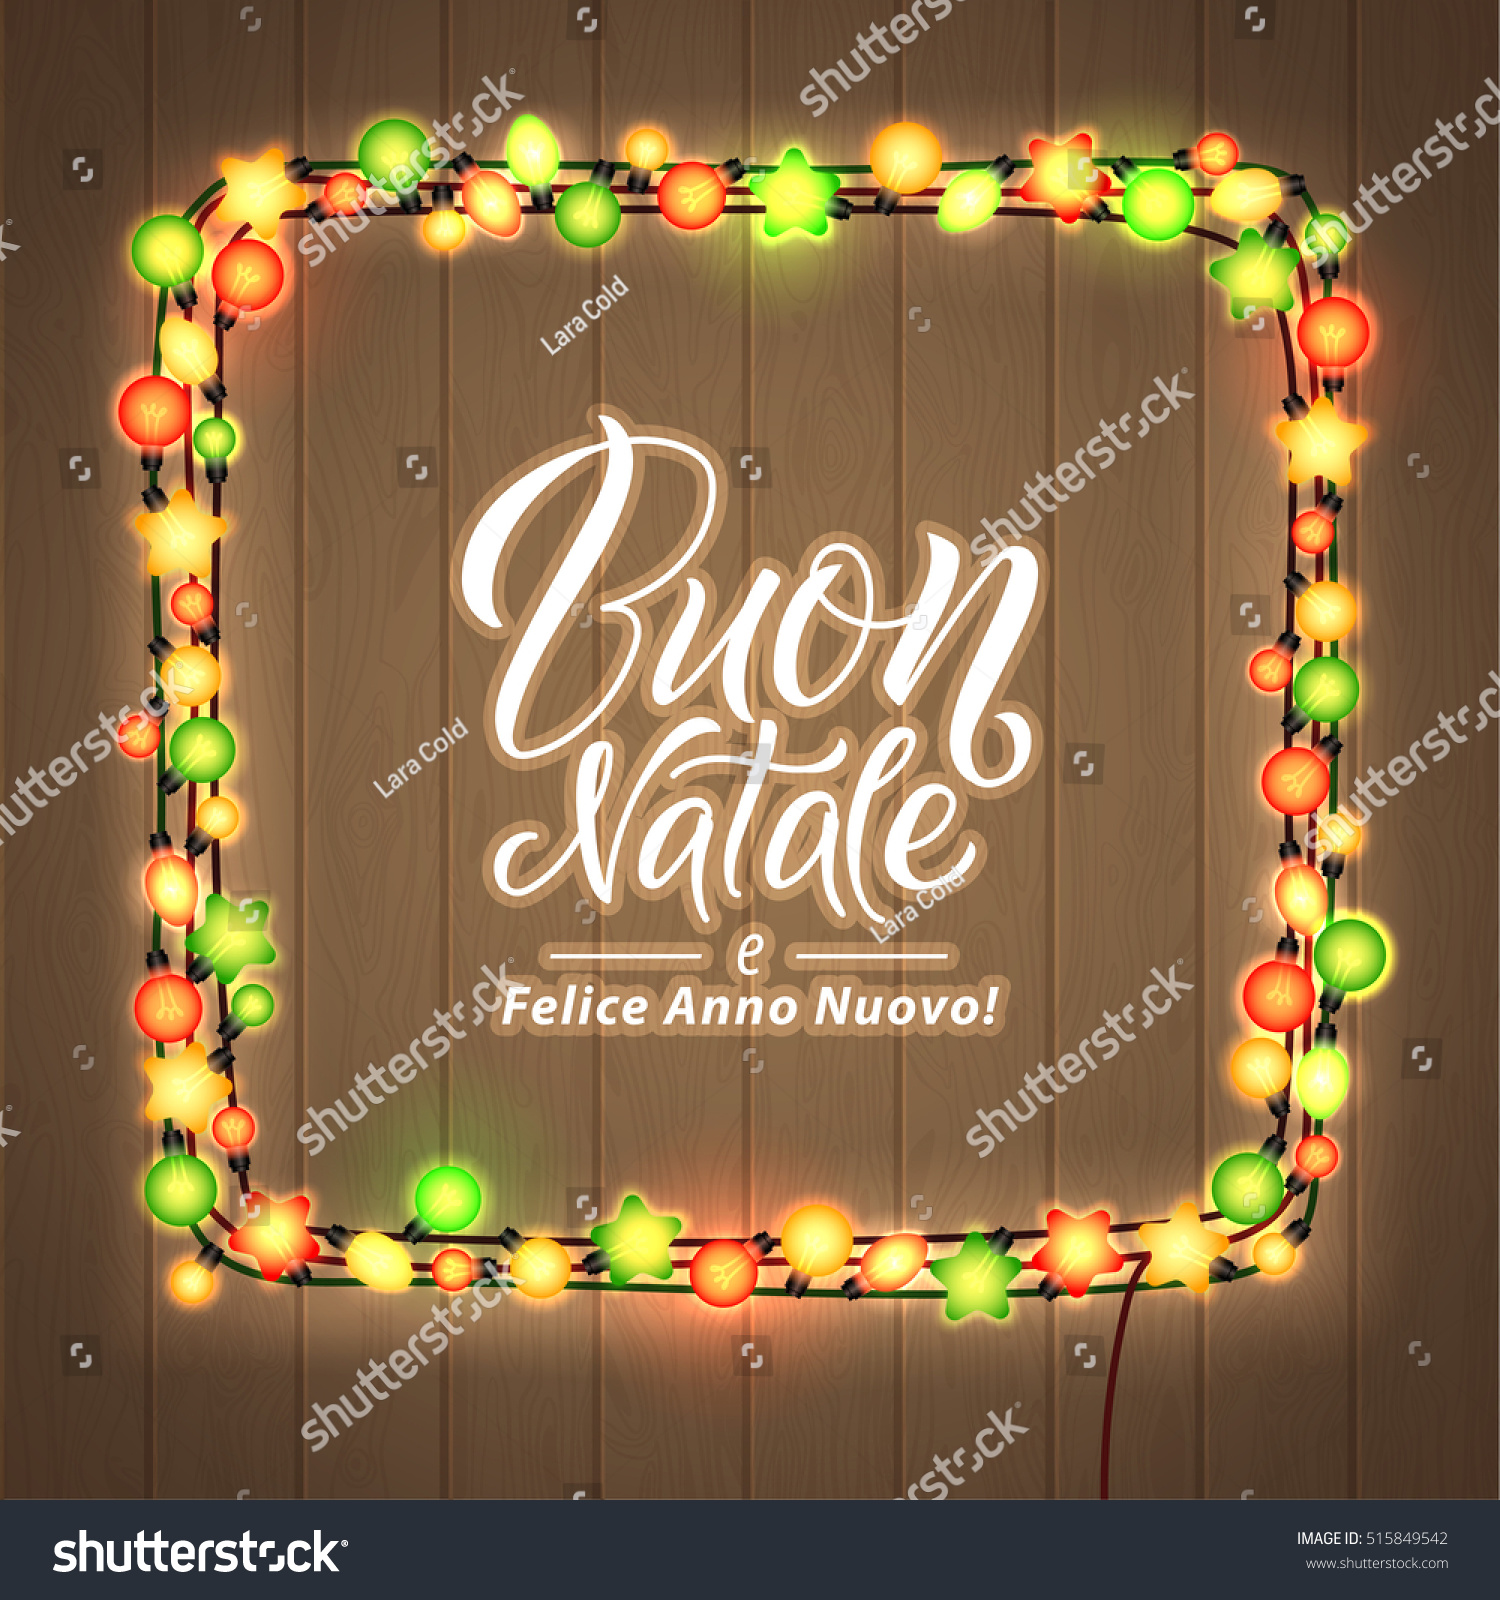 Merry christmas happy new year italian stock vector 515849542 merry christmas and happy new year italian language glowing christmas lights wreath for xmas kristyandbryce Gallery